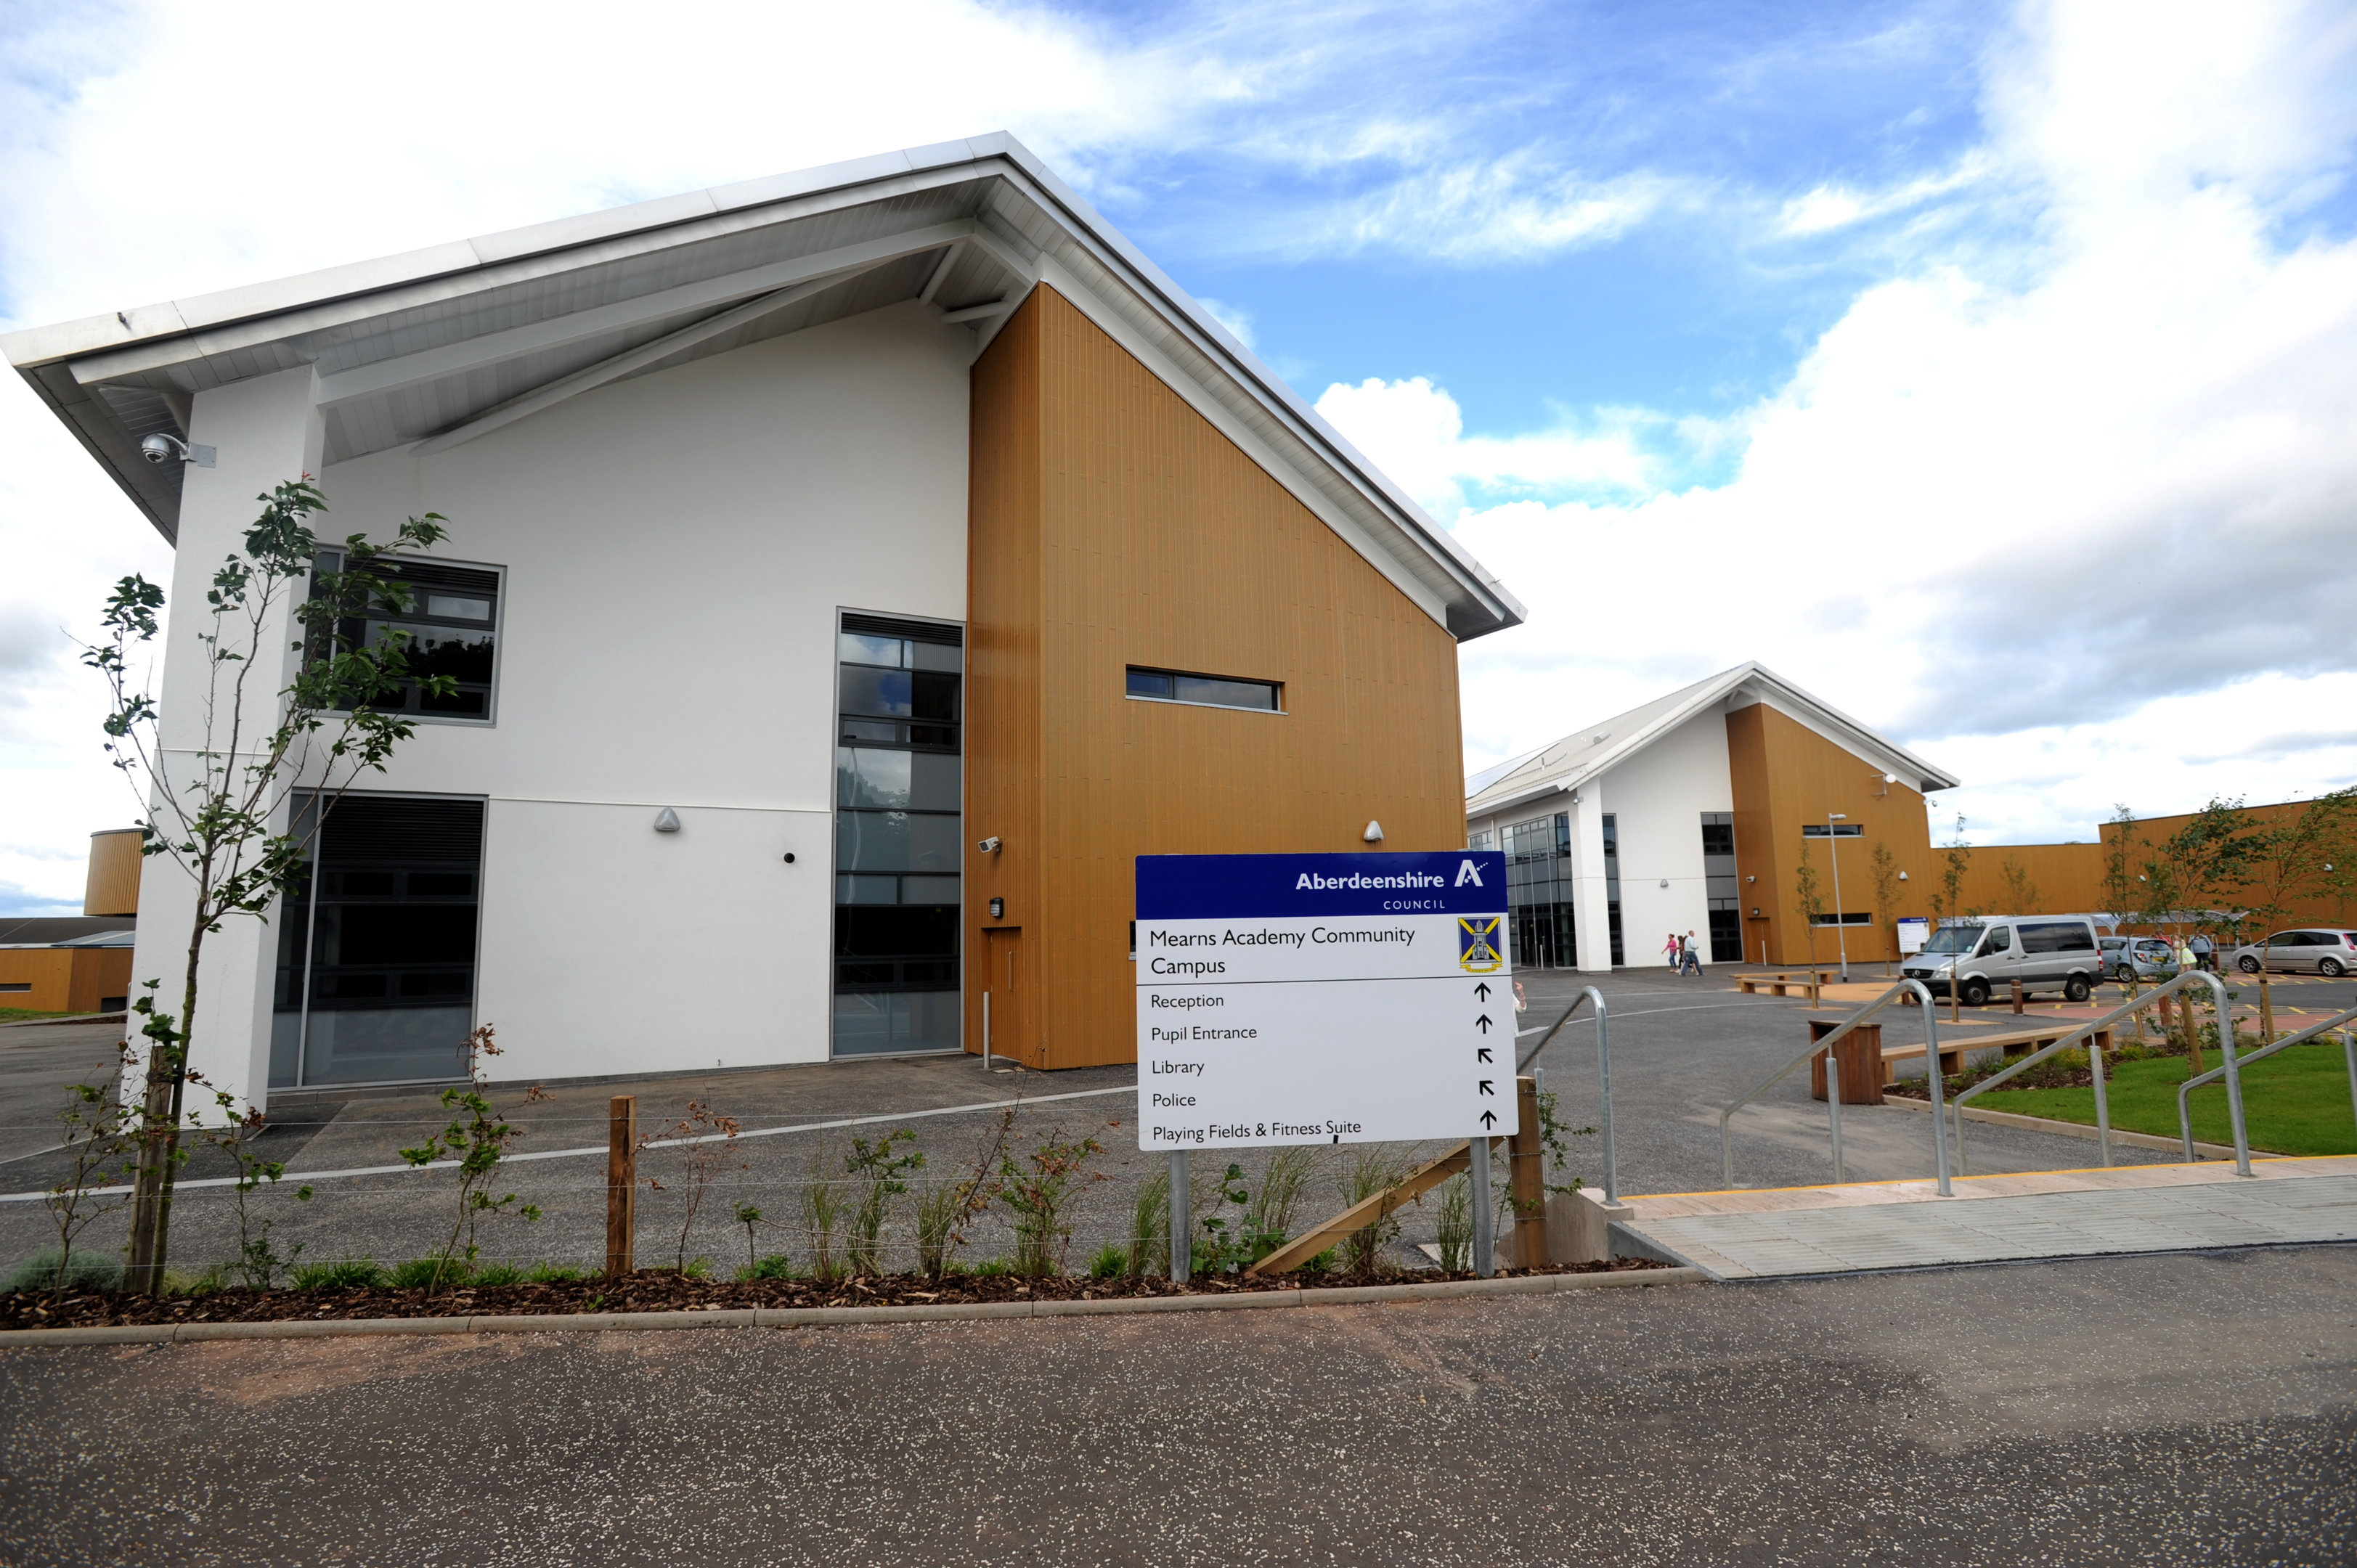 The incident happened at Mearns Academy